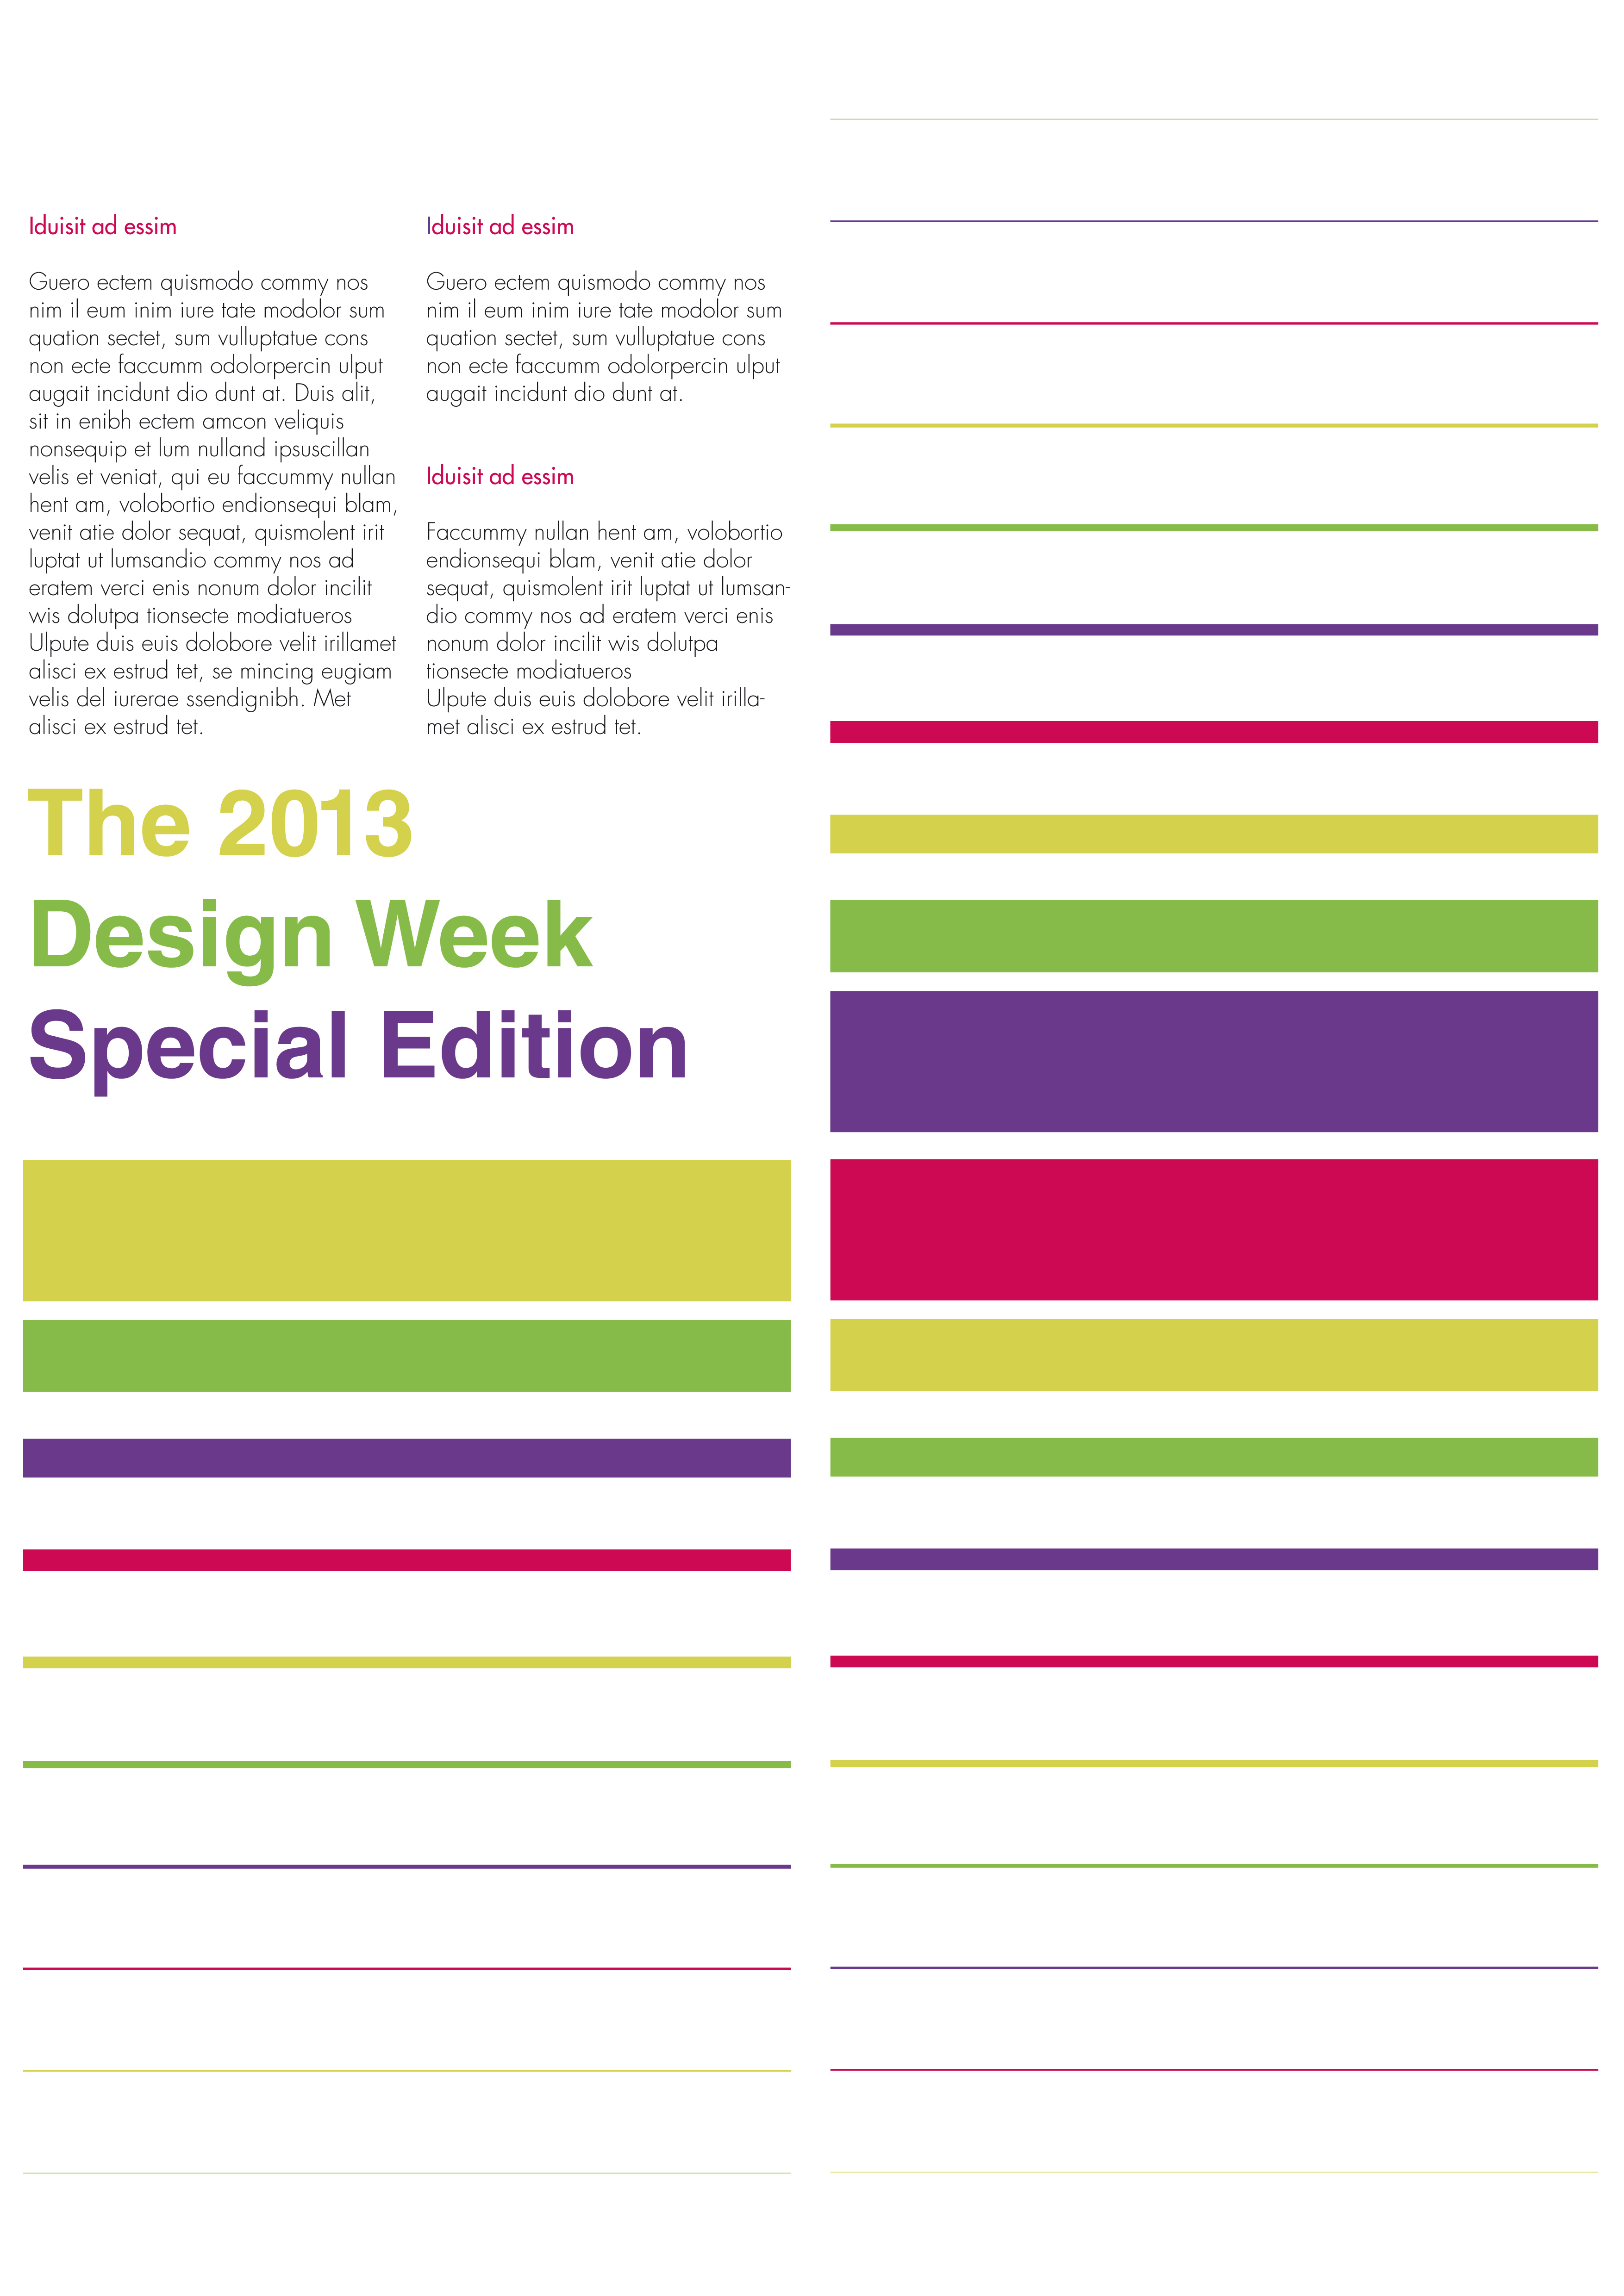 Dresign week special edition 2